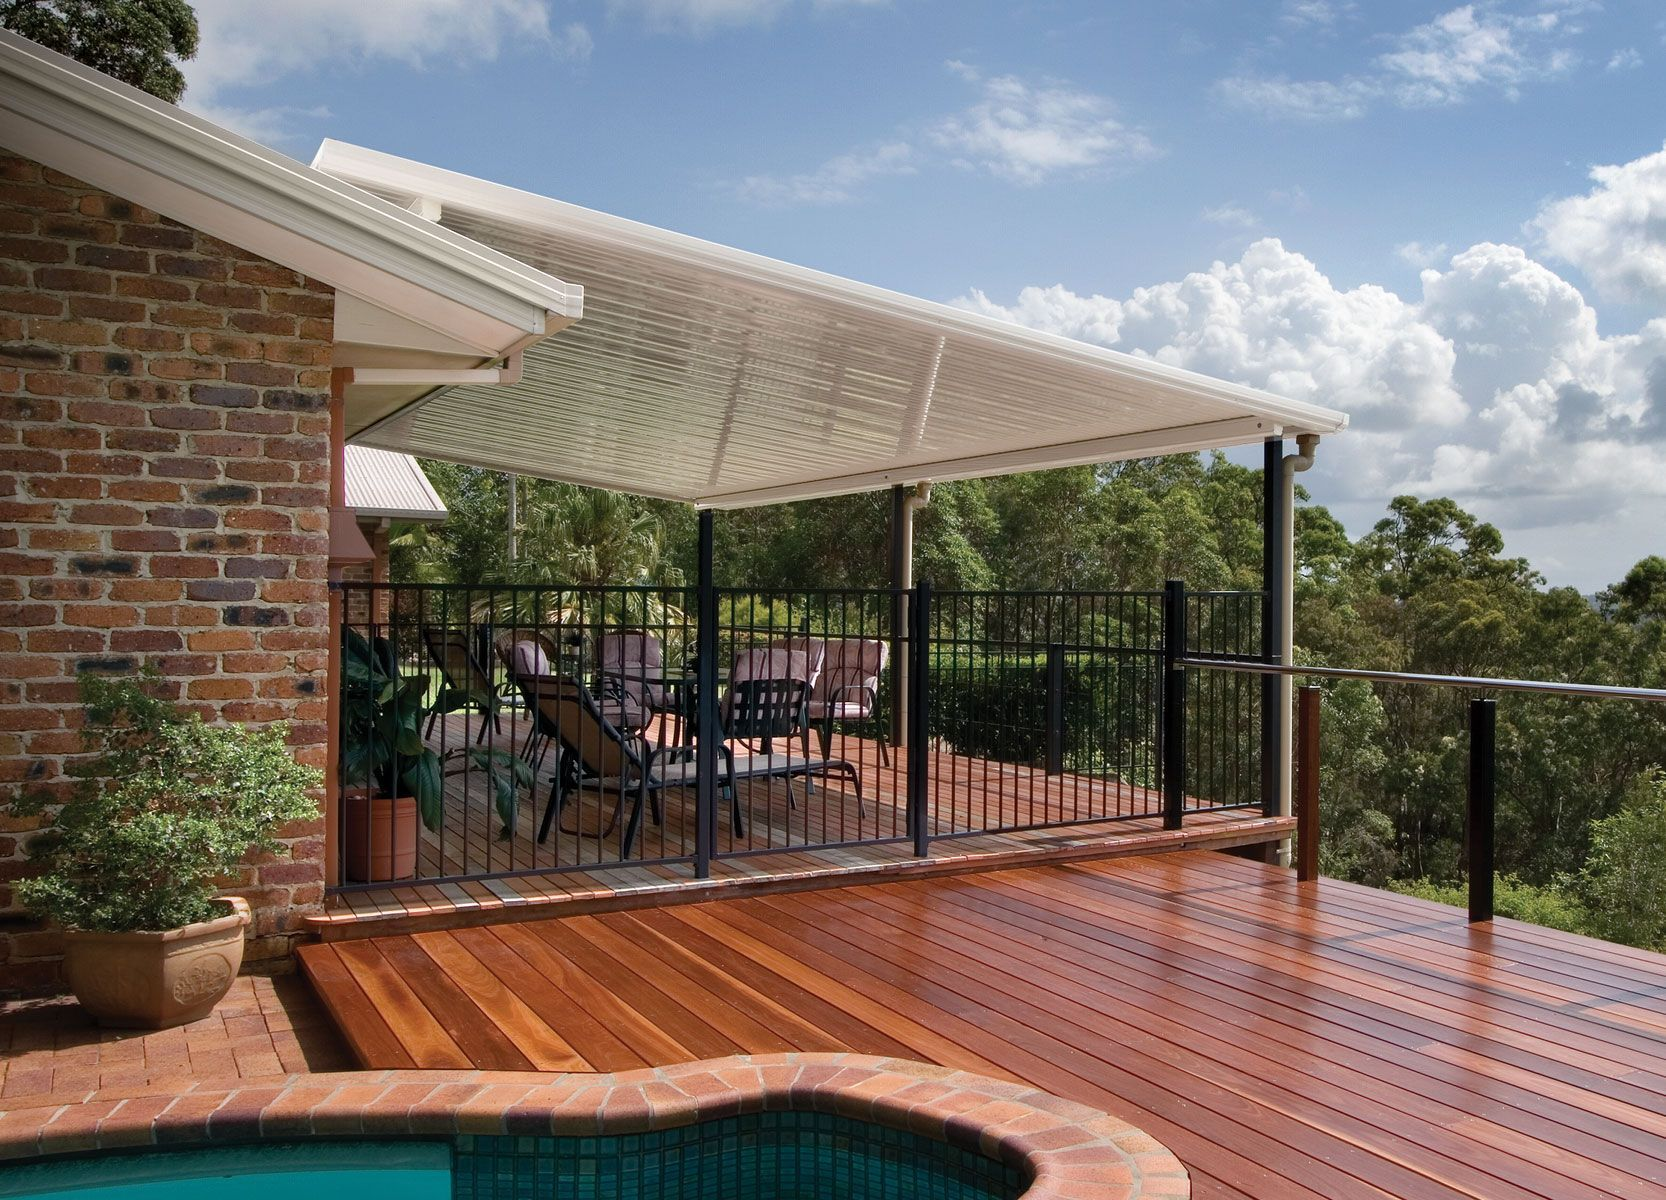 A Quality Flat Roof Patio Is An Easy And Inexpensive Way To Add Value To Your  Home. By Expanding Your Outdoor Living Space You Can Make Your Home Seem  Much ...